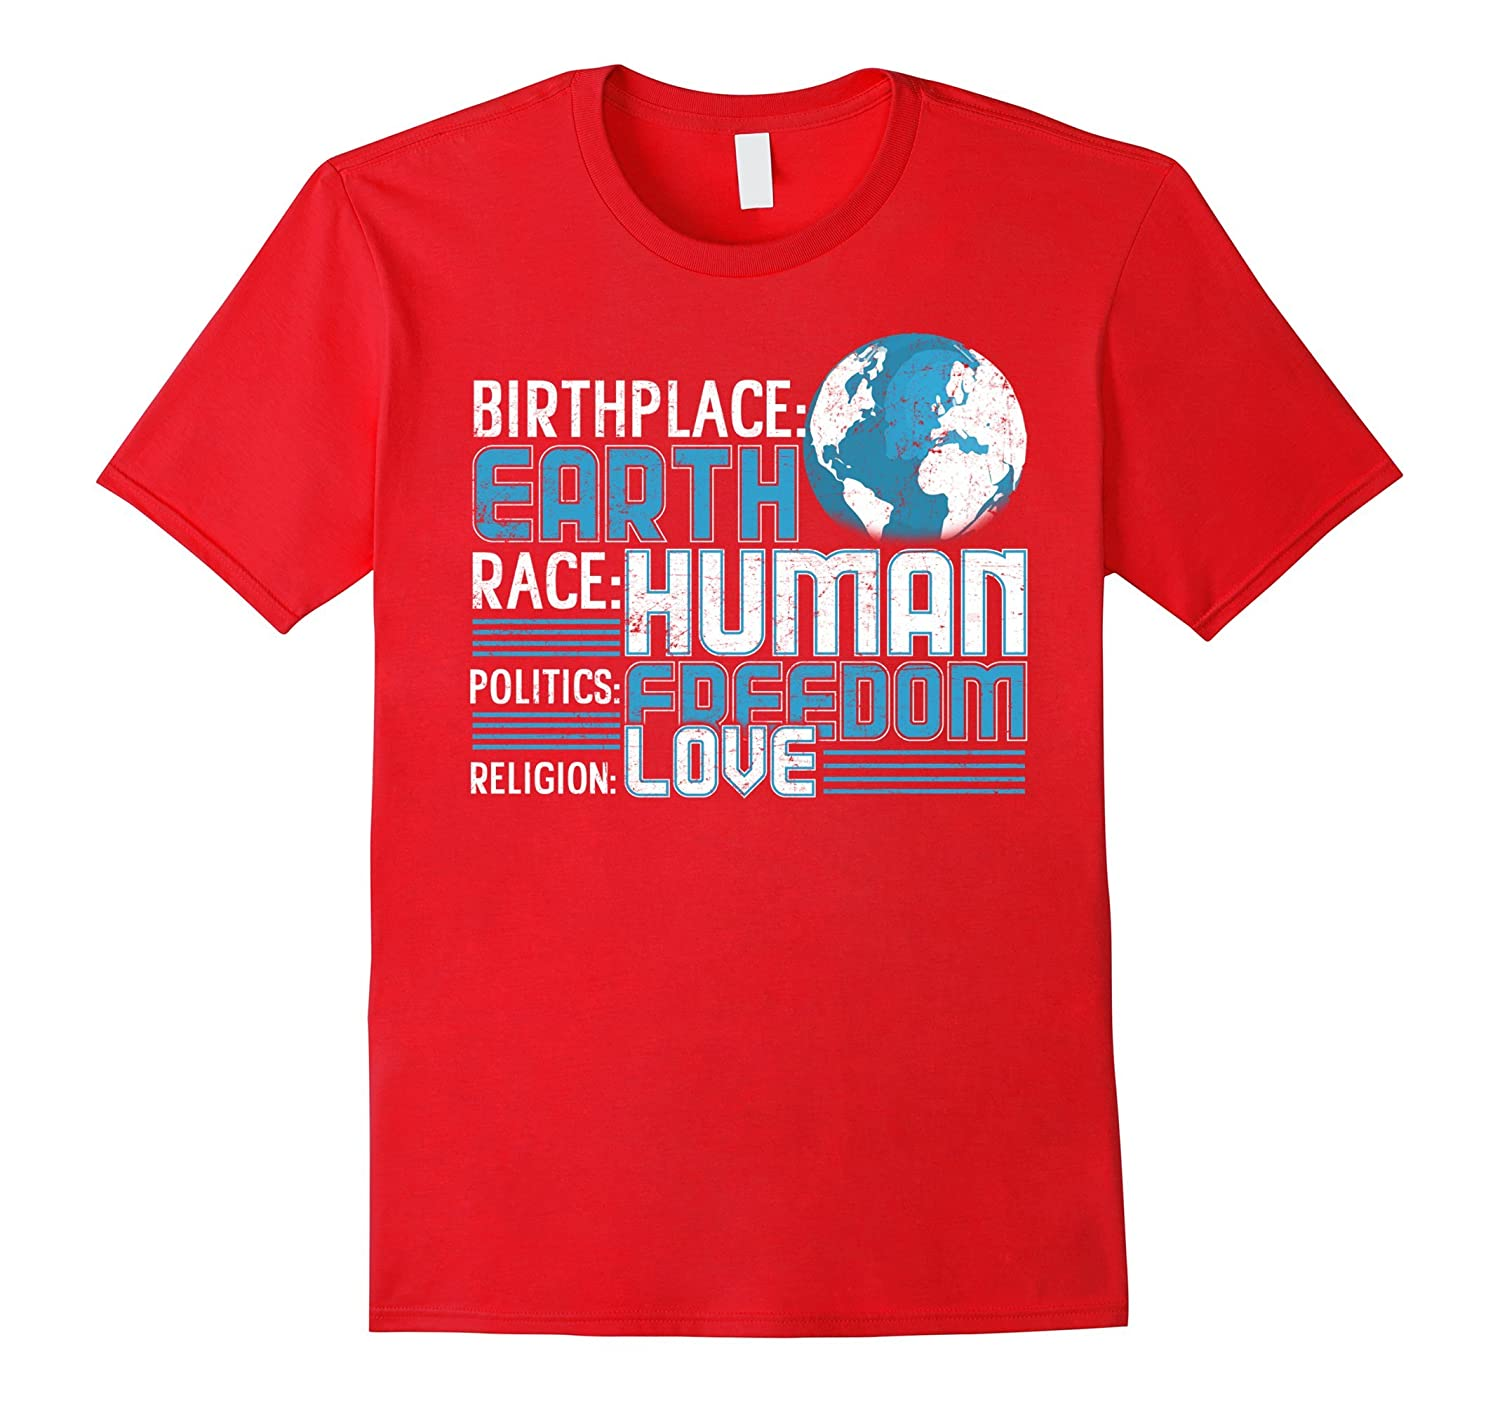 Birthplace Earth Race Human Politics Freedom Love Shirts-BN